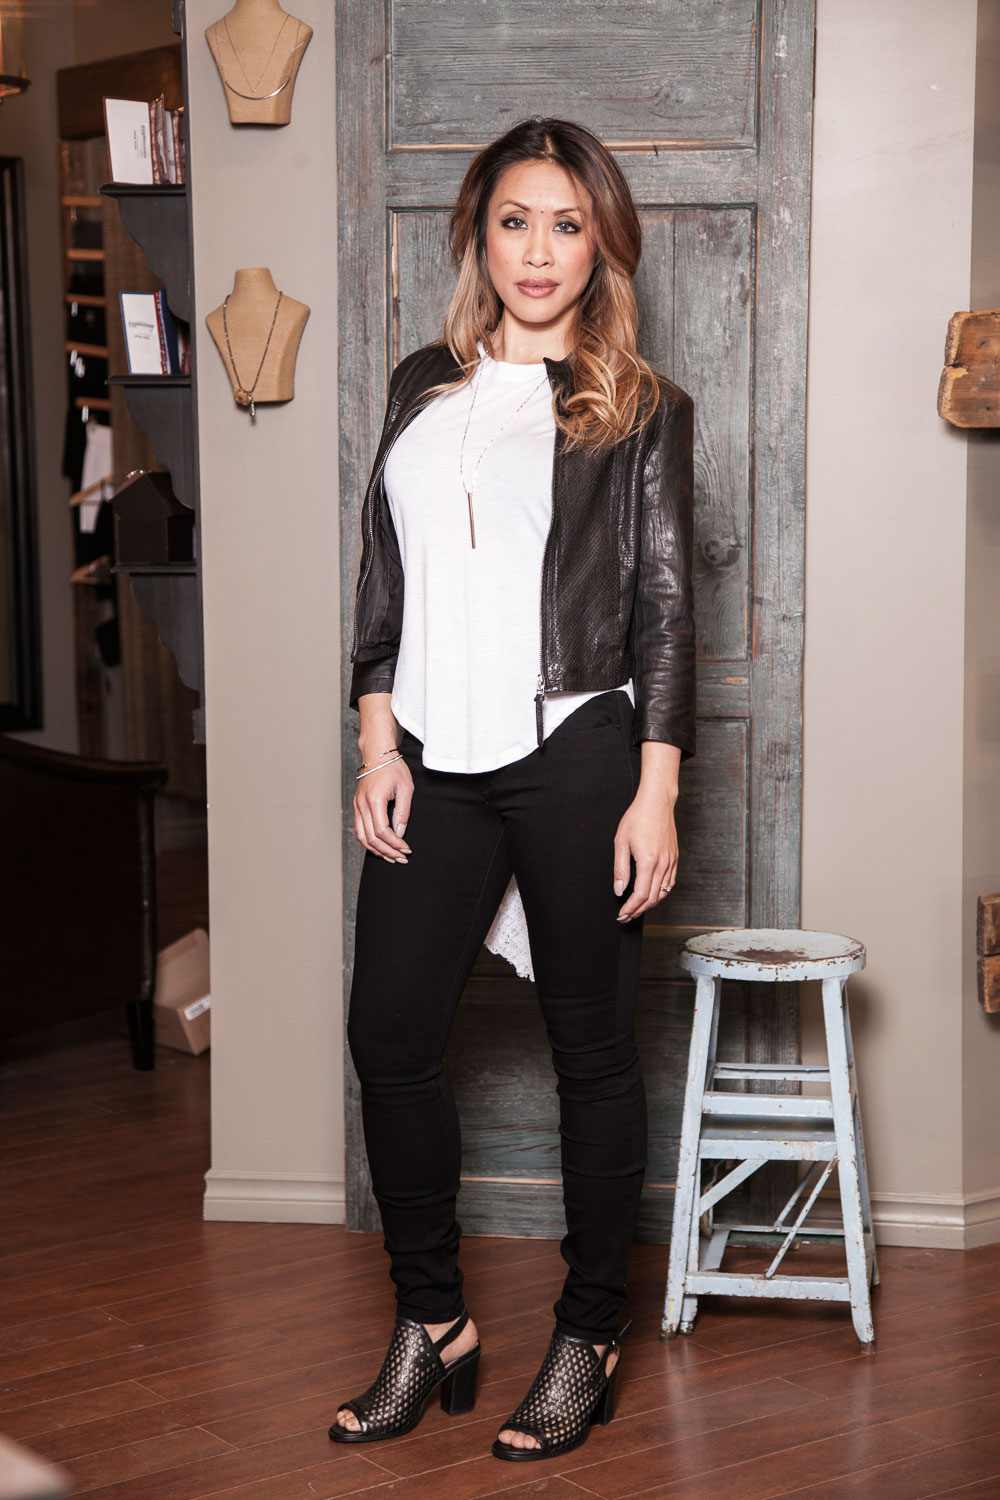 Bella-Maas-Boutique-black-and-white-spring-fashion-edmonton-st-albert-sherwood-park-local-style-trend-bano-eemee-leather-jacket-joes-jeansmid-rise-skinny.jpg